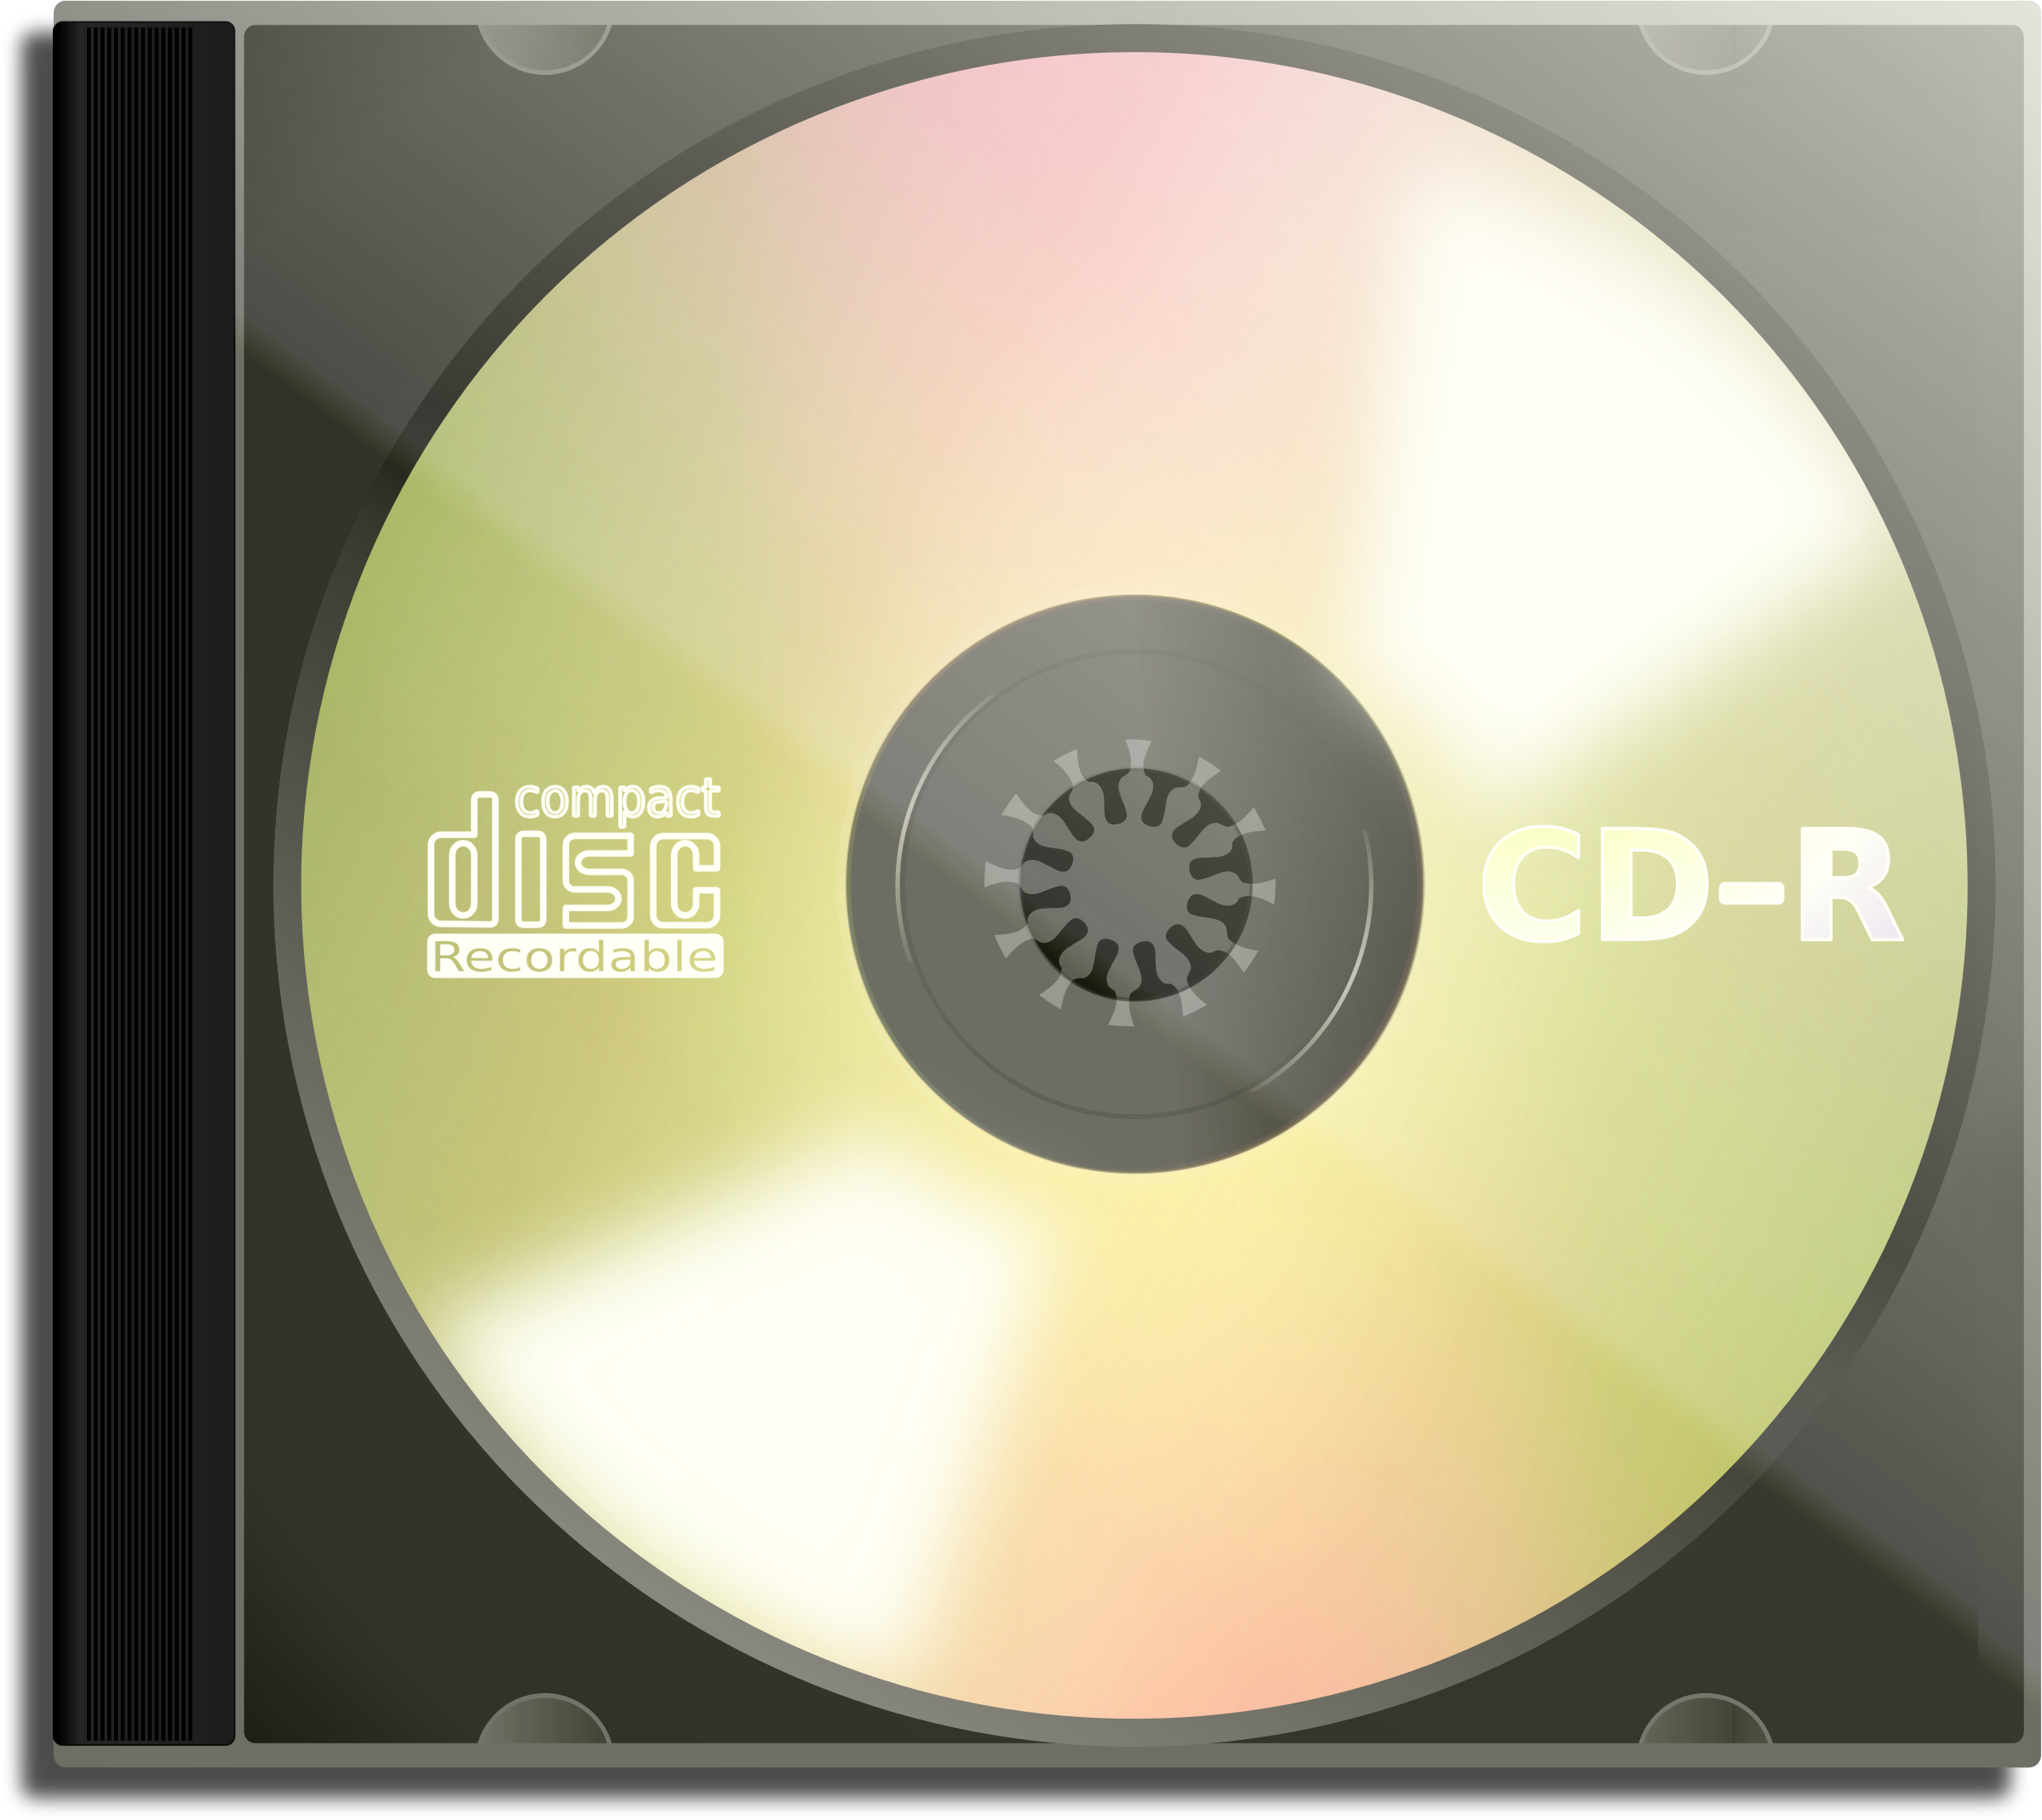 CD-R Compact Disc-Recordable by Keistutis